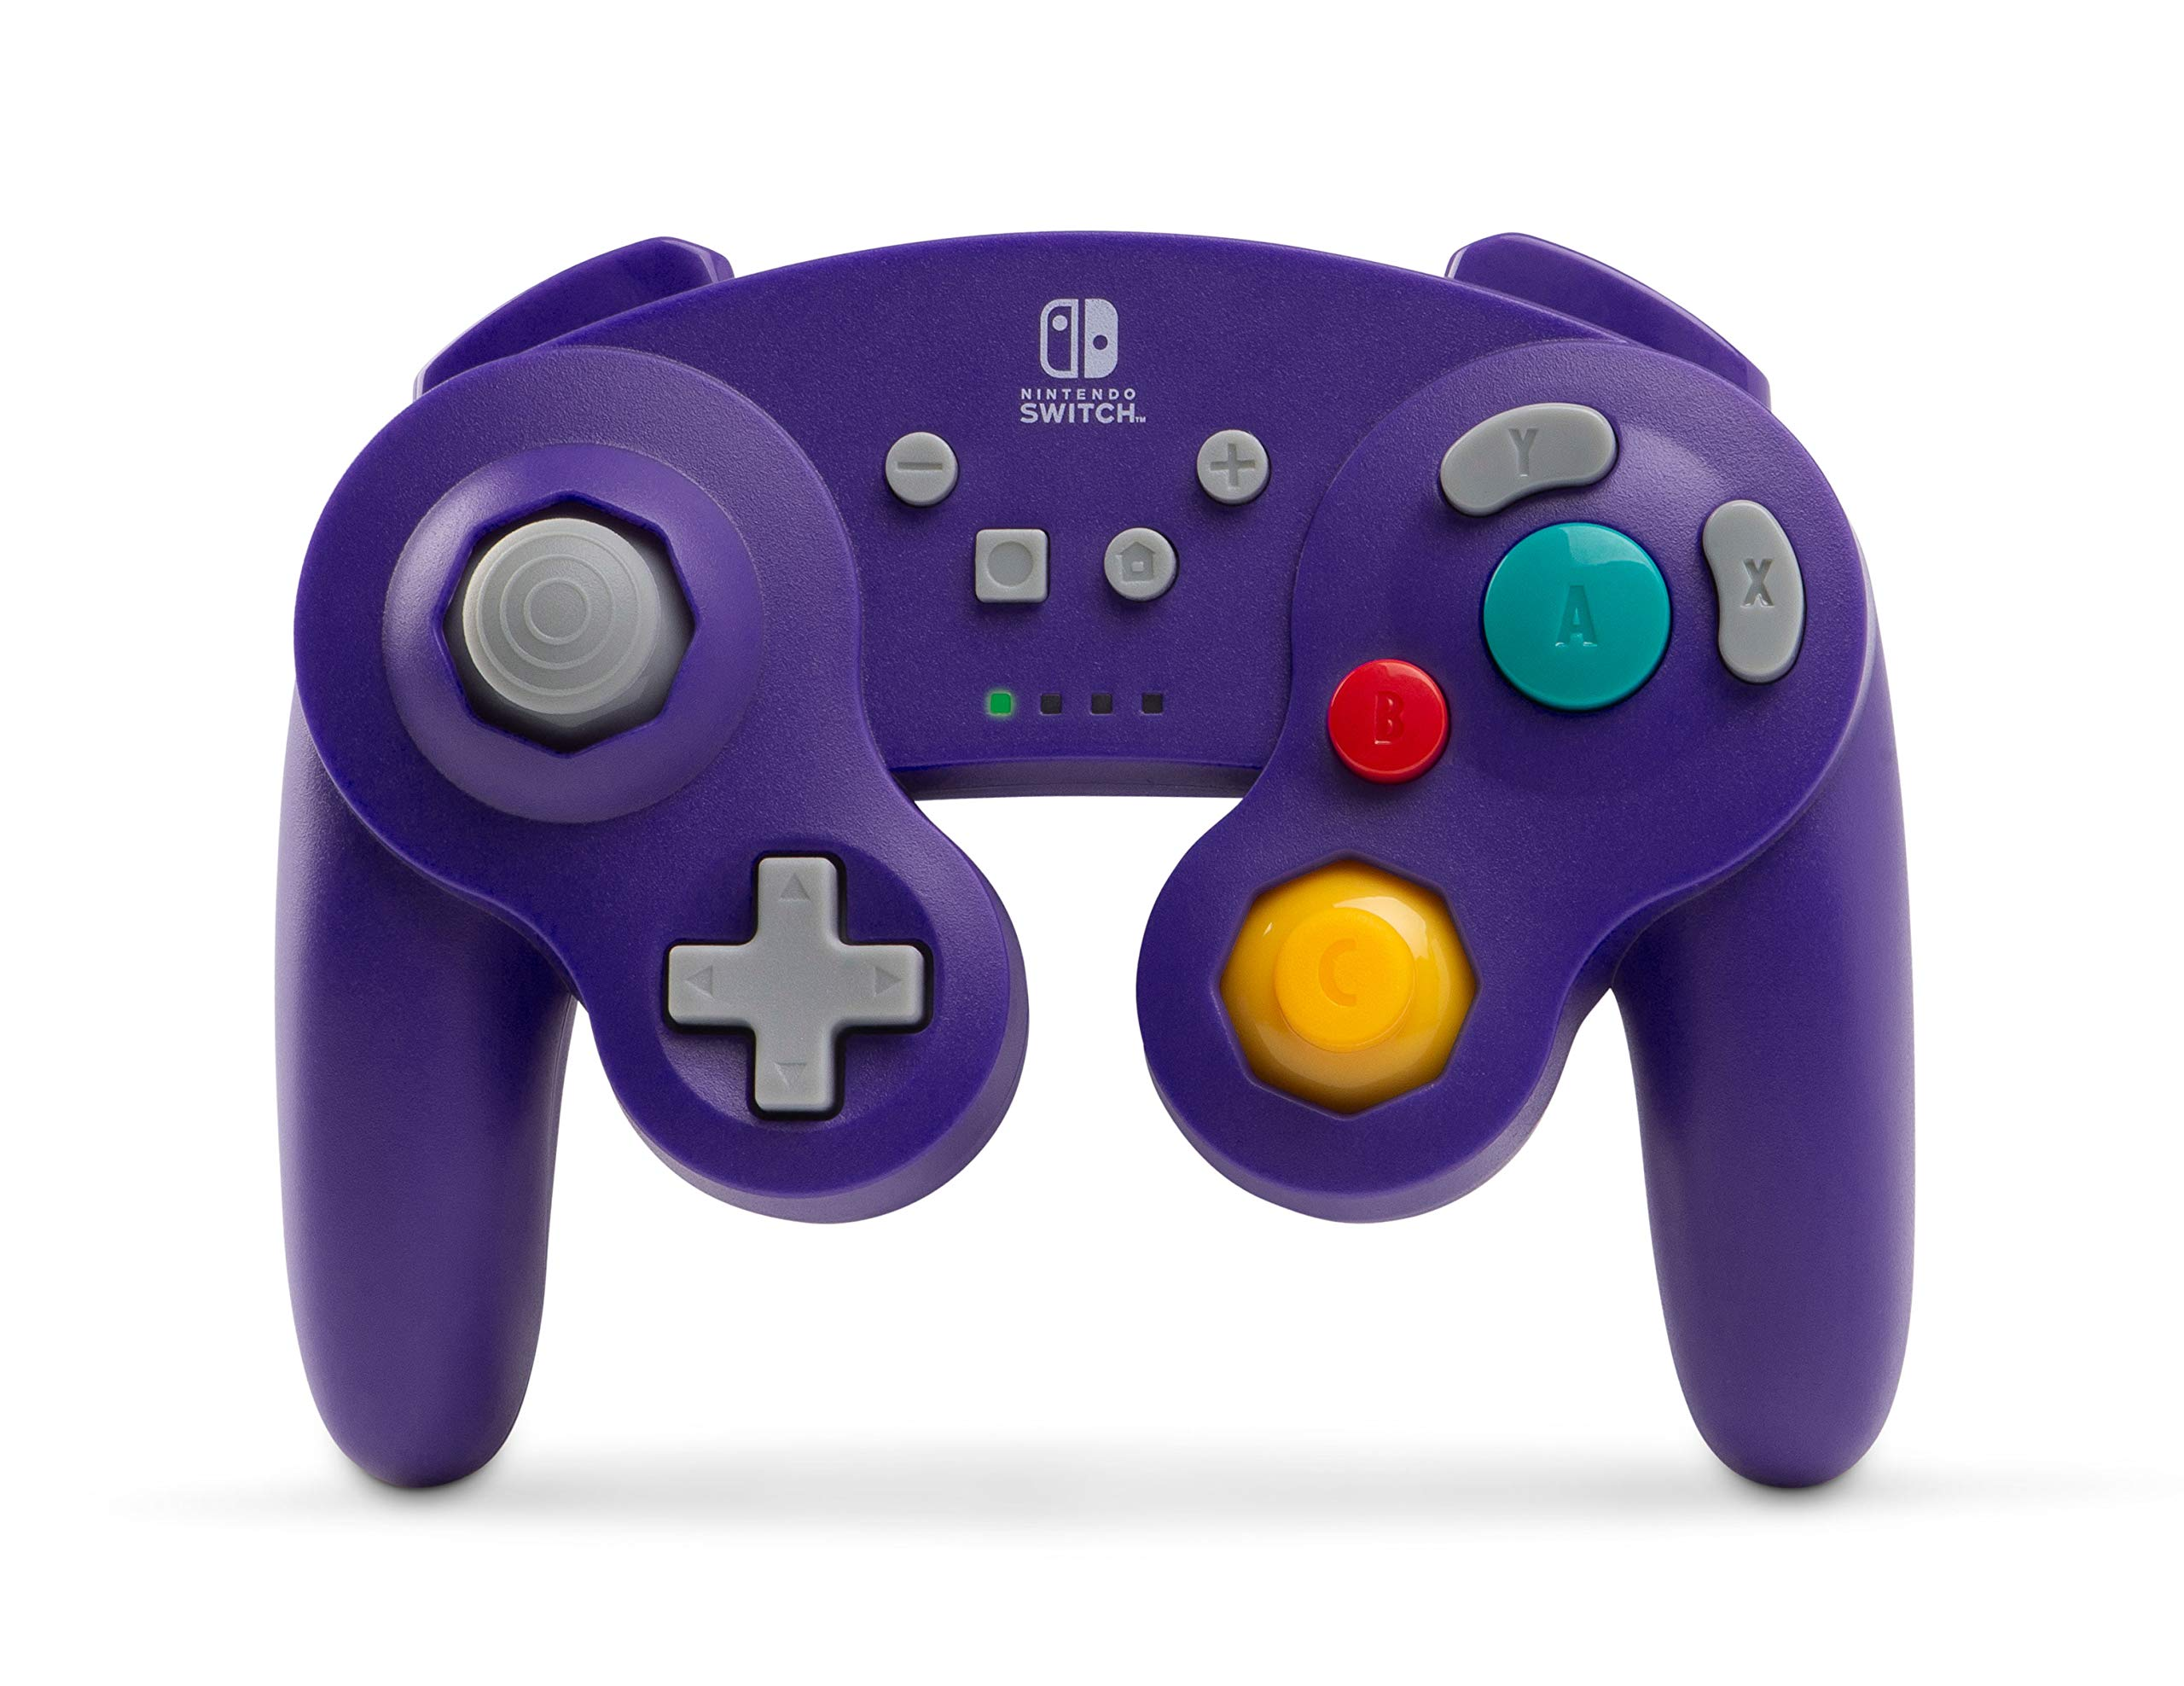 PowerA Wireless GameCube Style Controller for Nintendo Switch - Purple